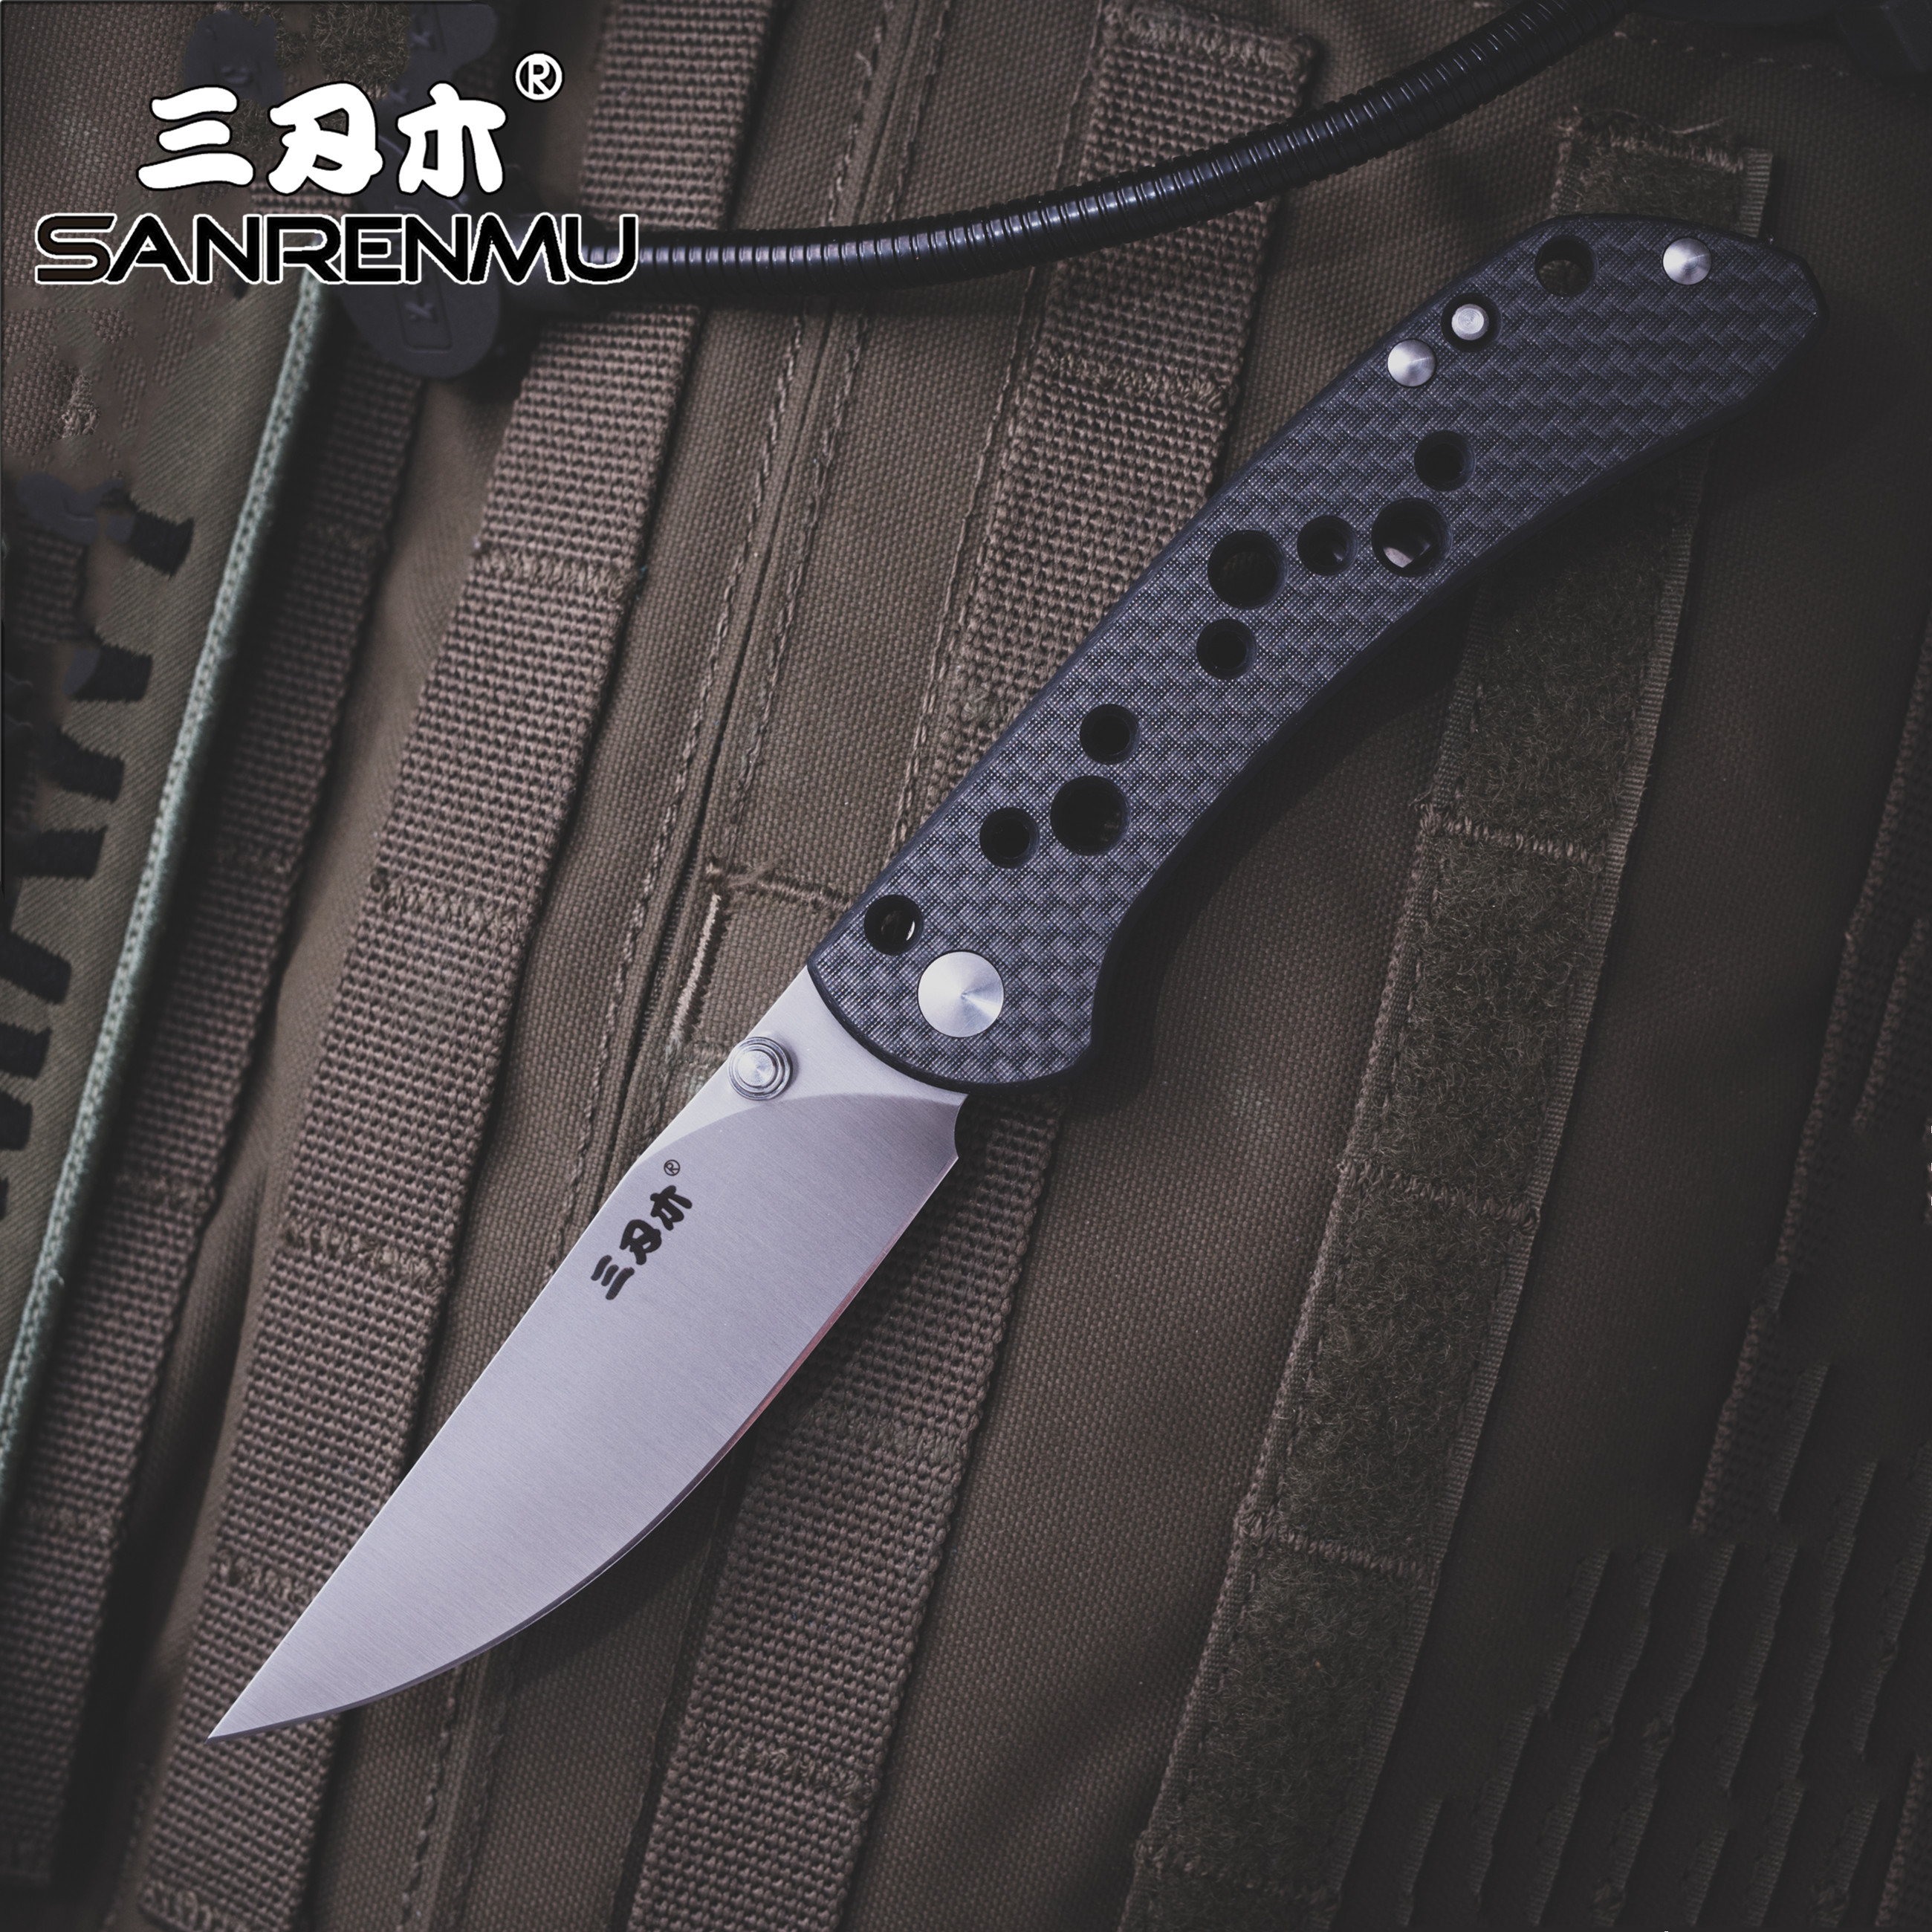 SANRENMU SRM 9165 Pocket Folding Knife 12C27 Steel Rescue Survival Tool Outdoor Camping EDC Mini Tactical  Huinting Knife